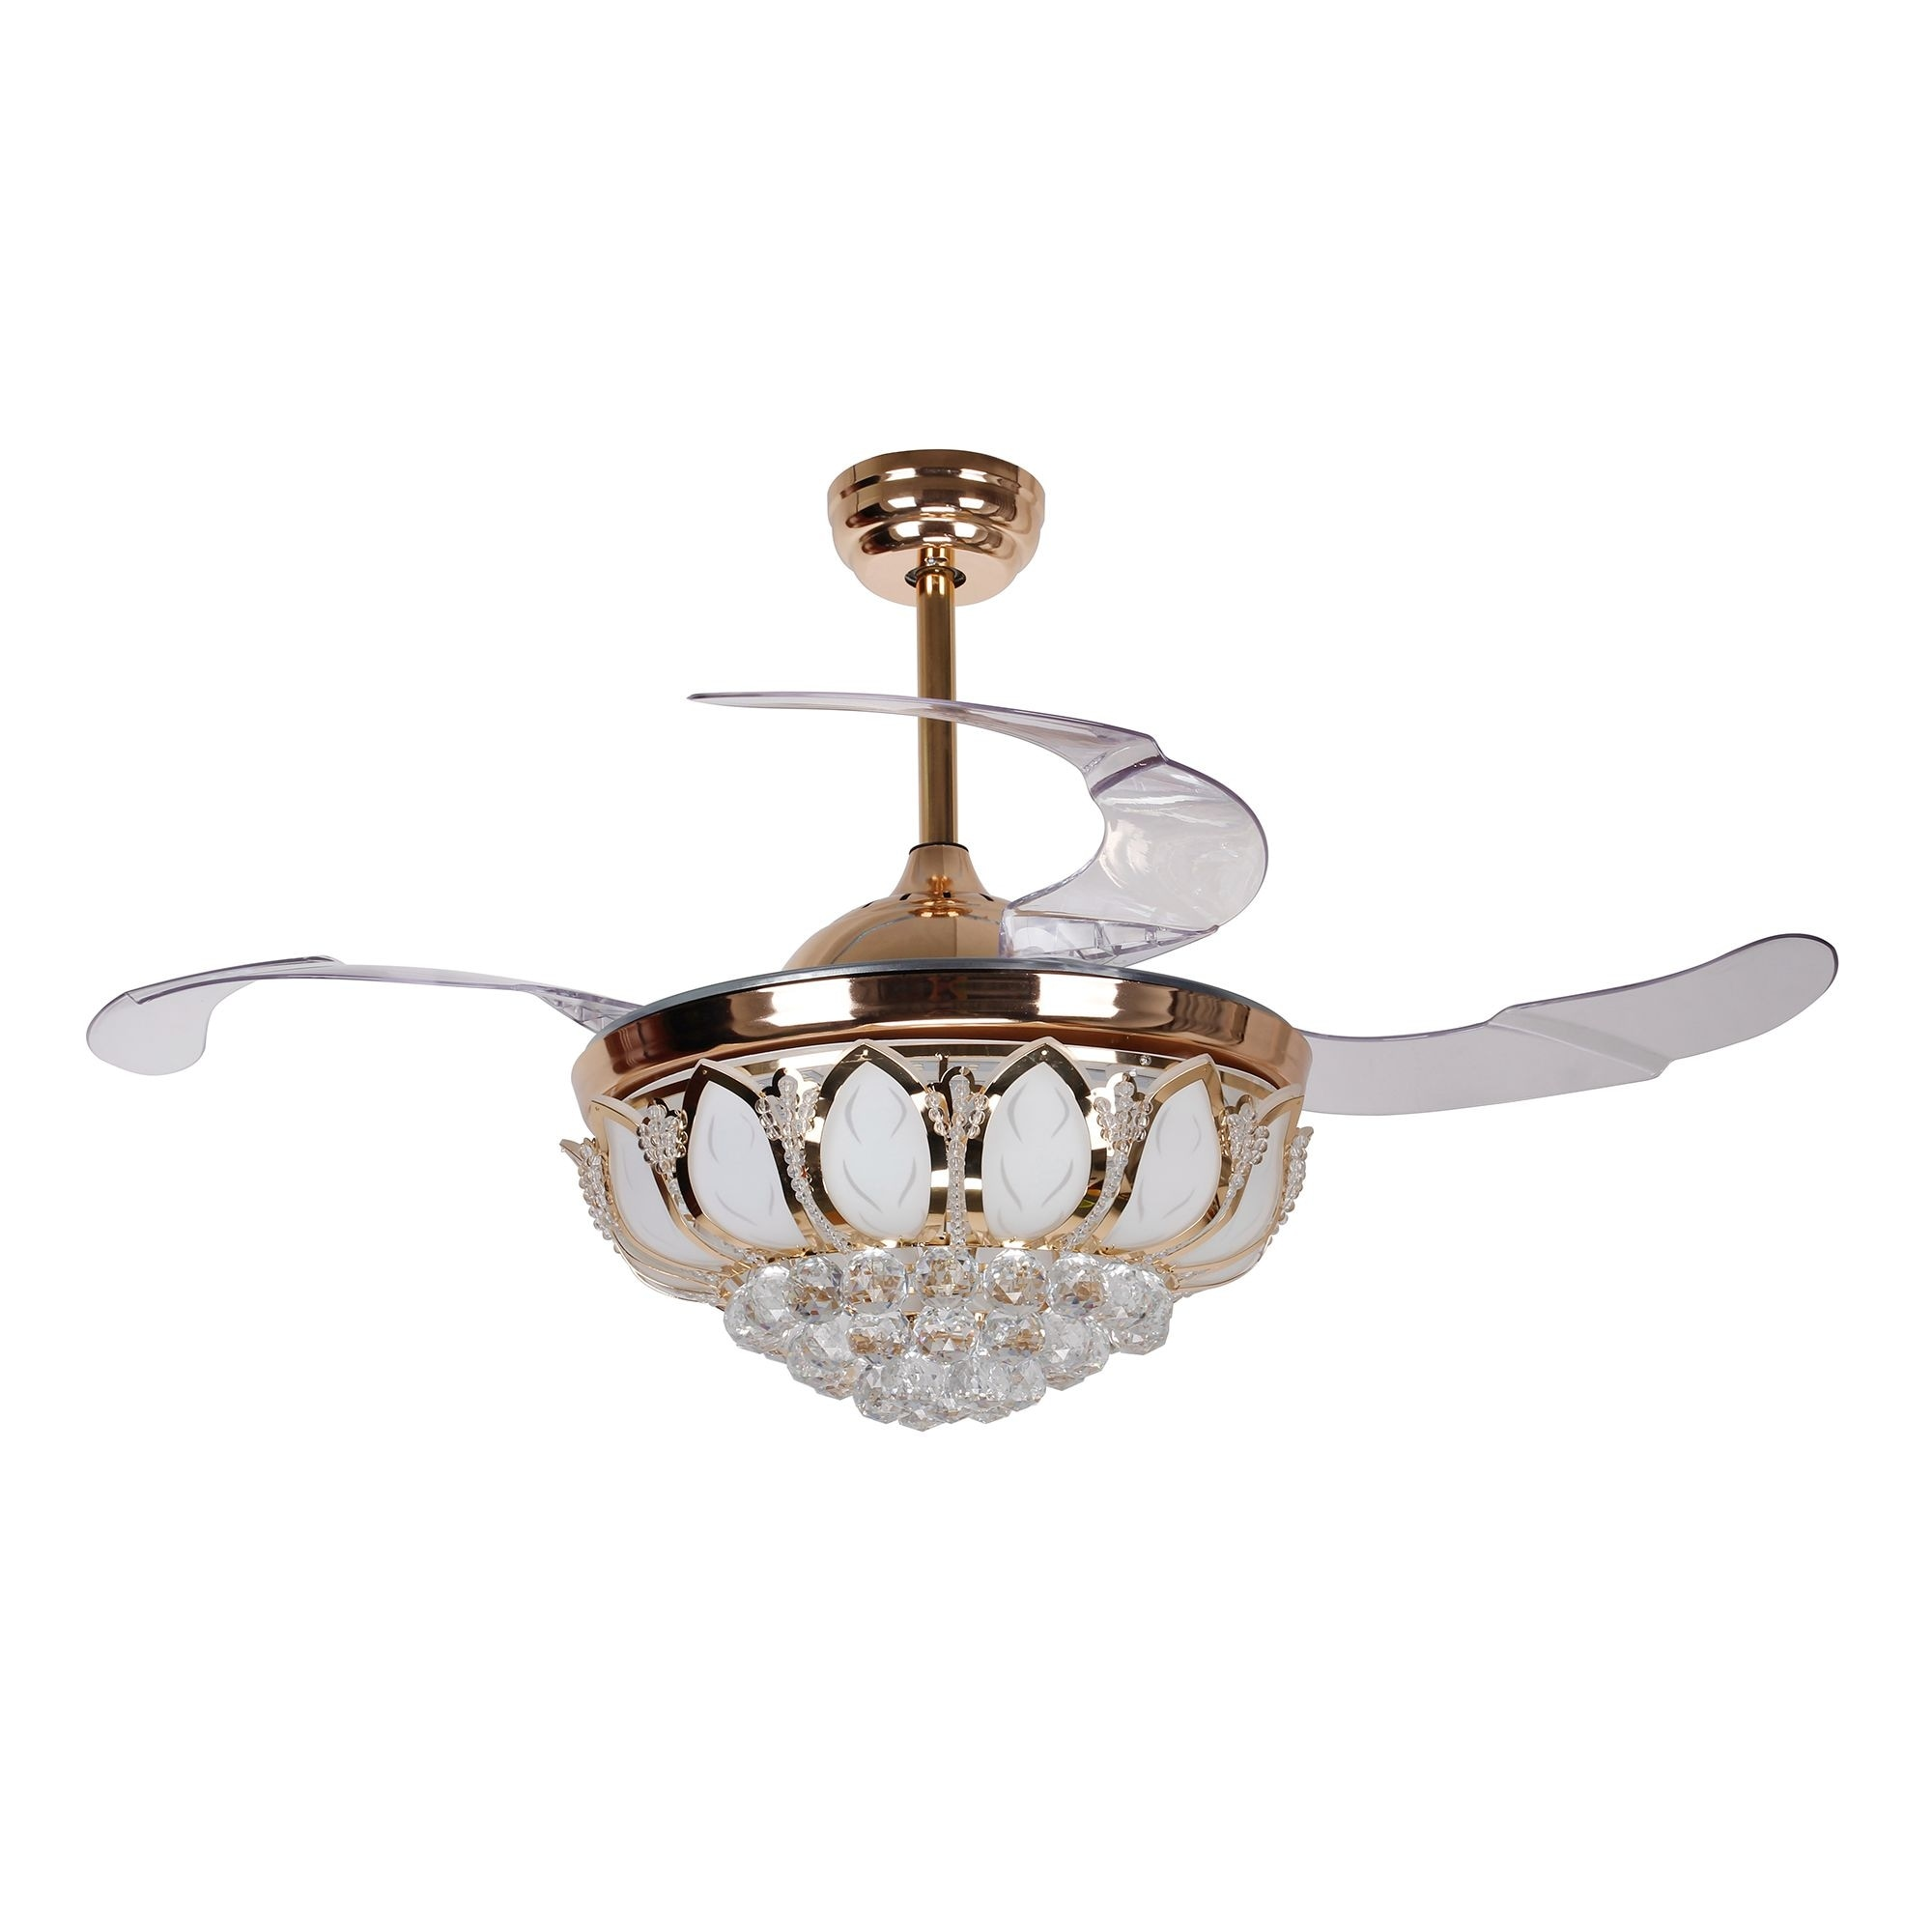 fans many best with home top ceiling stores a for or lights abs designer wooden finish every bladed blade in india index retractable fan walnut blades bangalore